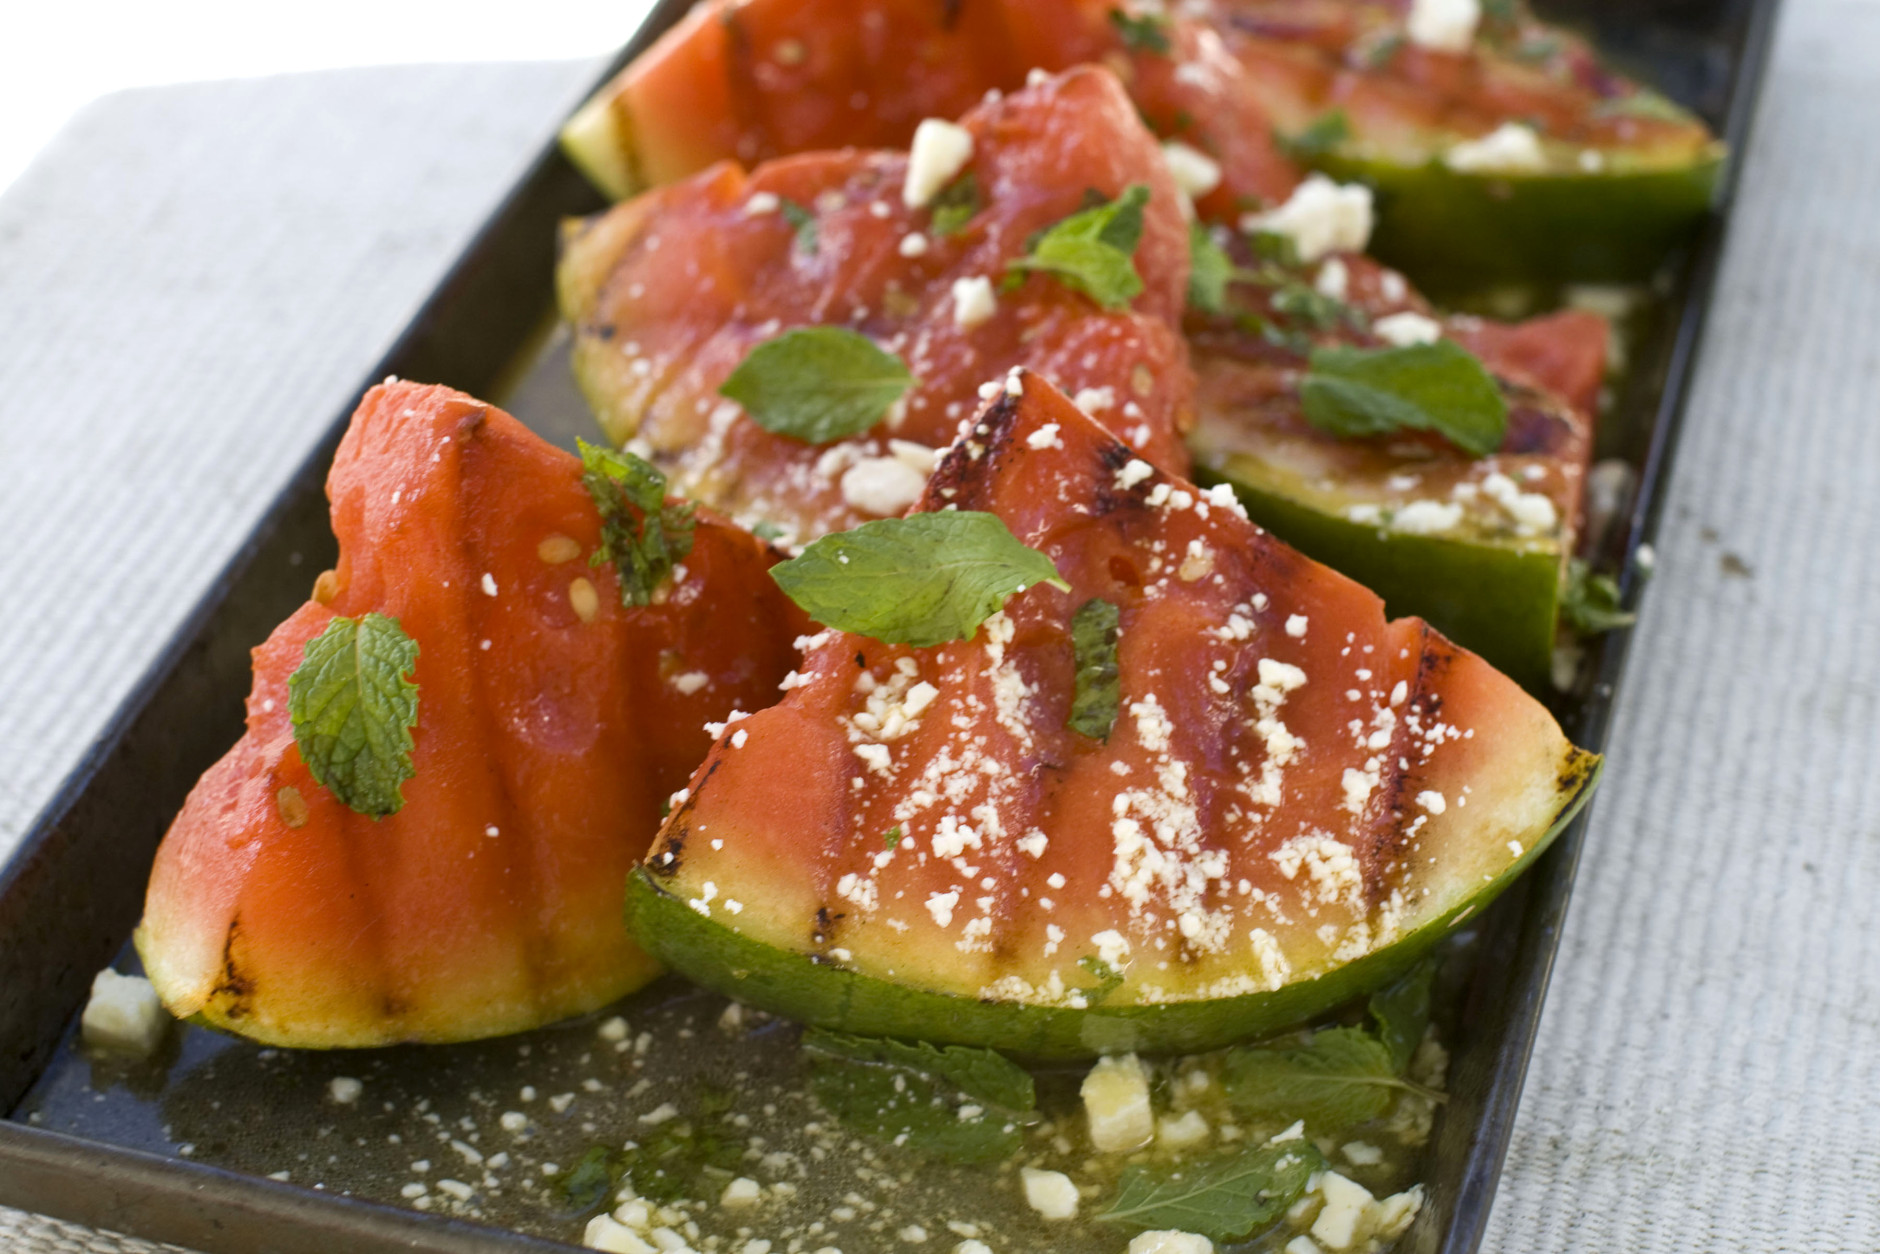 This Aug. 22, 2011 photo shows grilled watermelon salad in Concord, N.H. When ready to serve, place grilled watermelon pieces on a large platter or divide among individual plates.  (AP Photo/Matthew Mead)